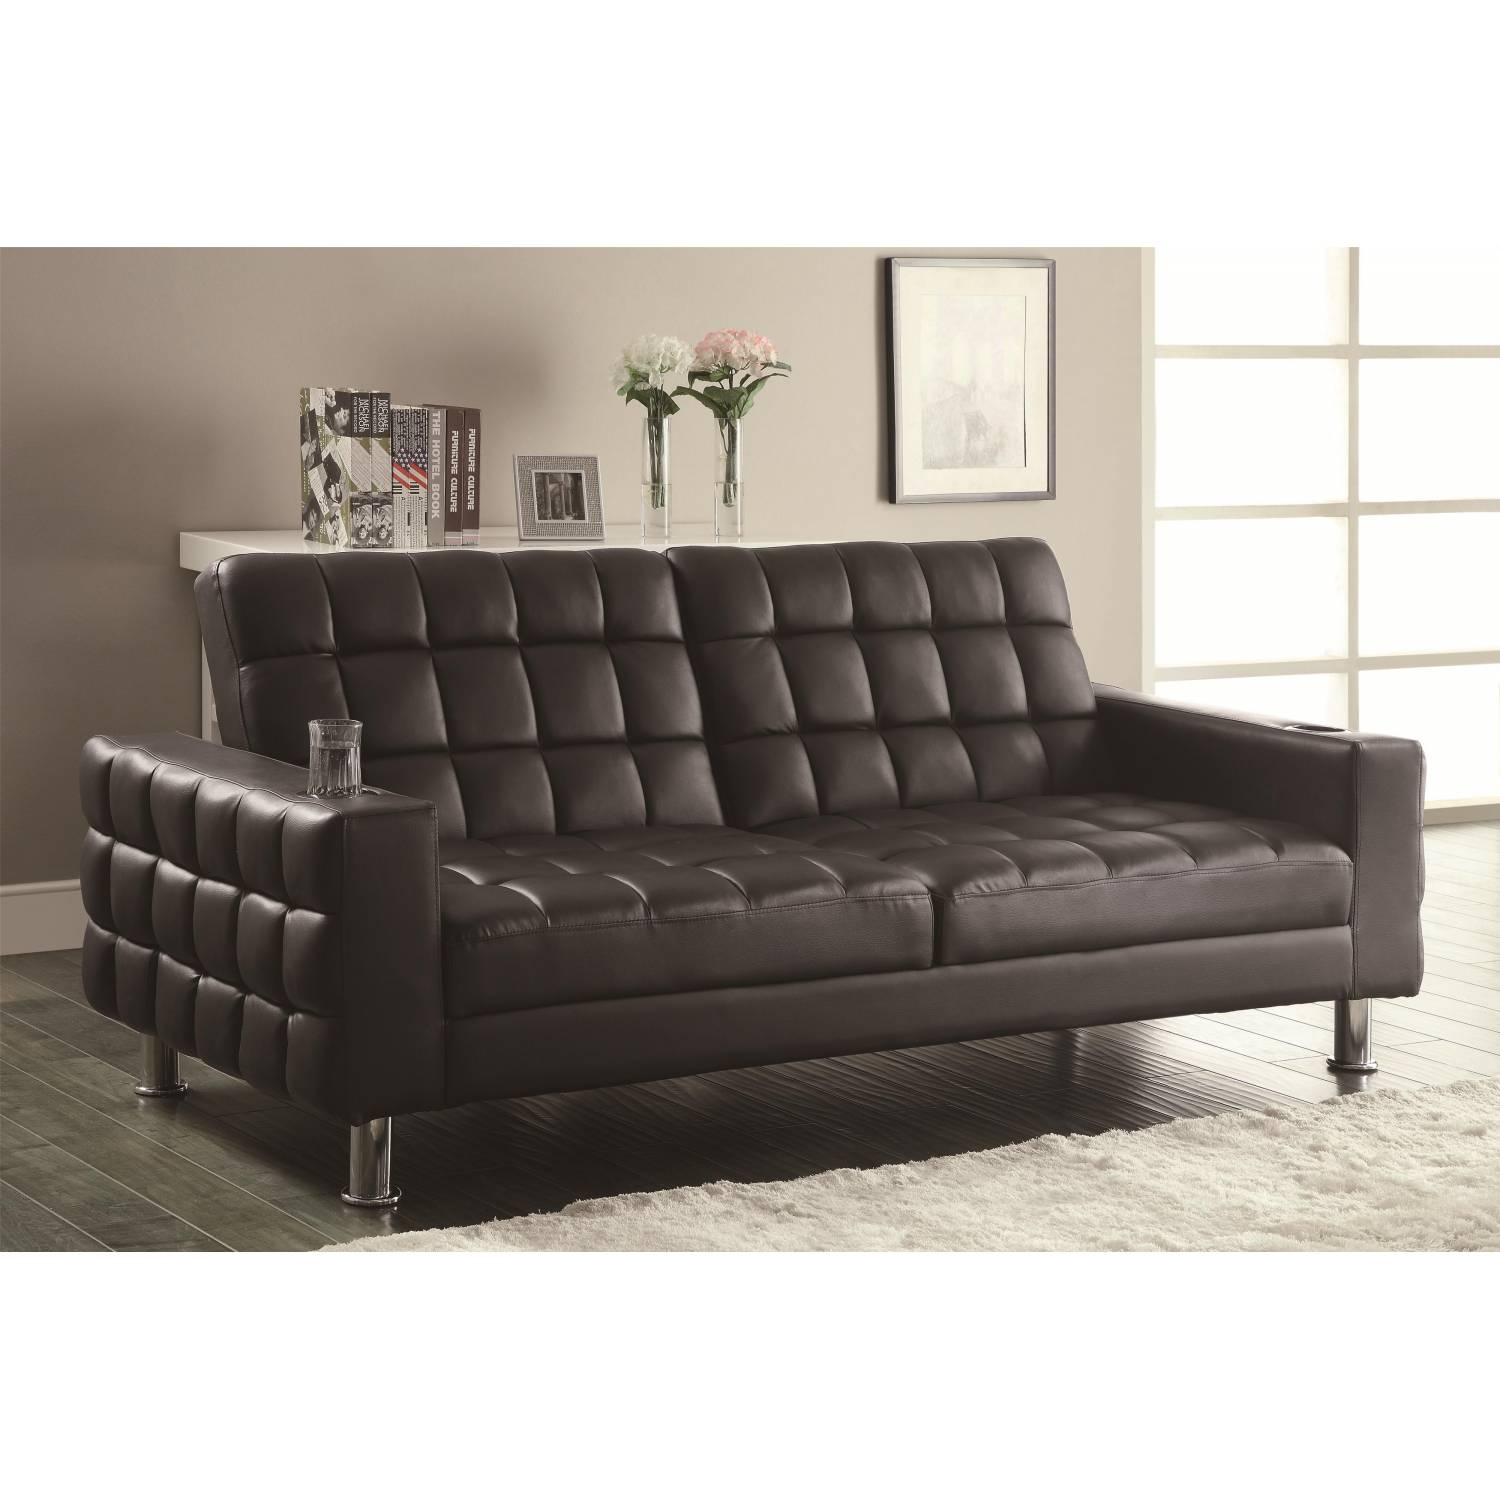 Sofa Bed With Cup Holders 300294